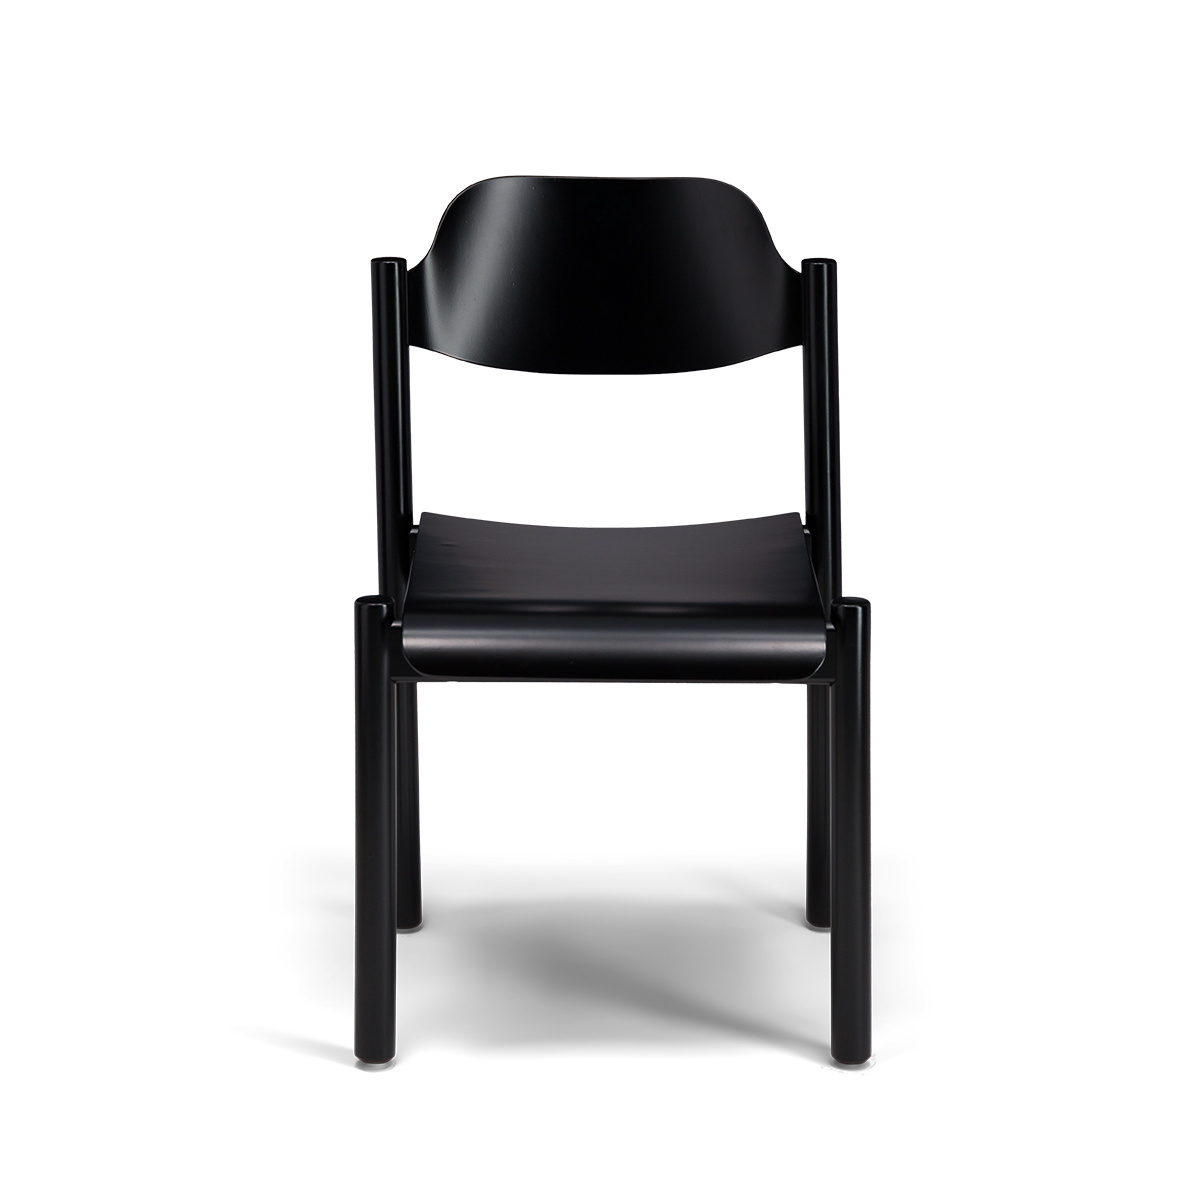 Achille black chair